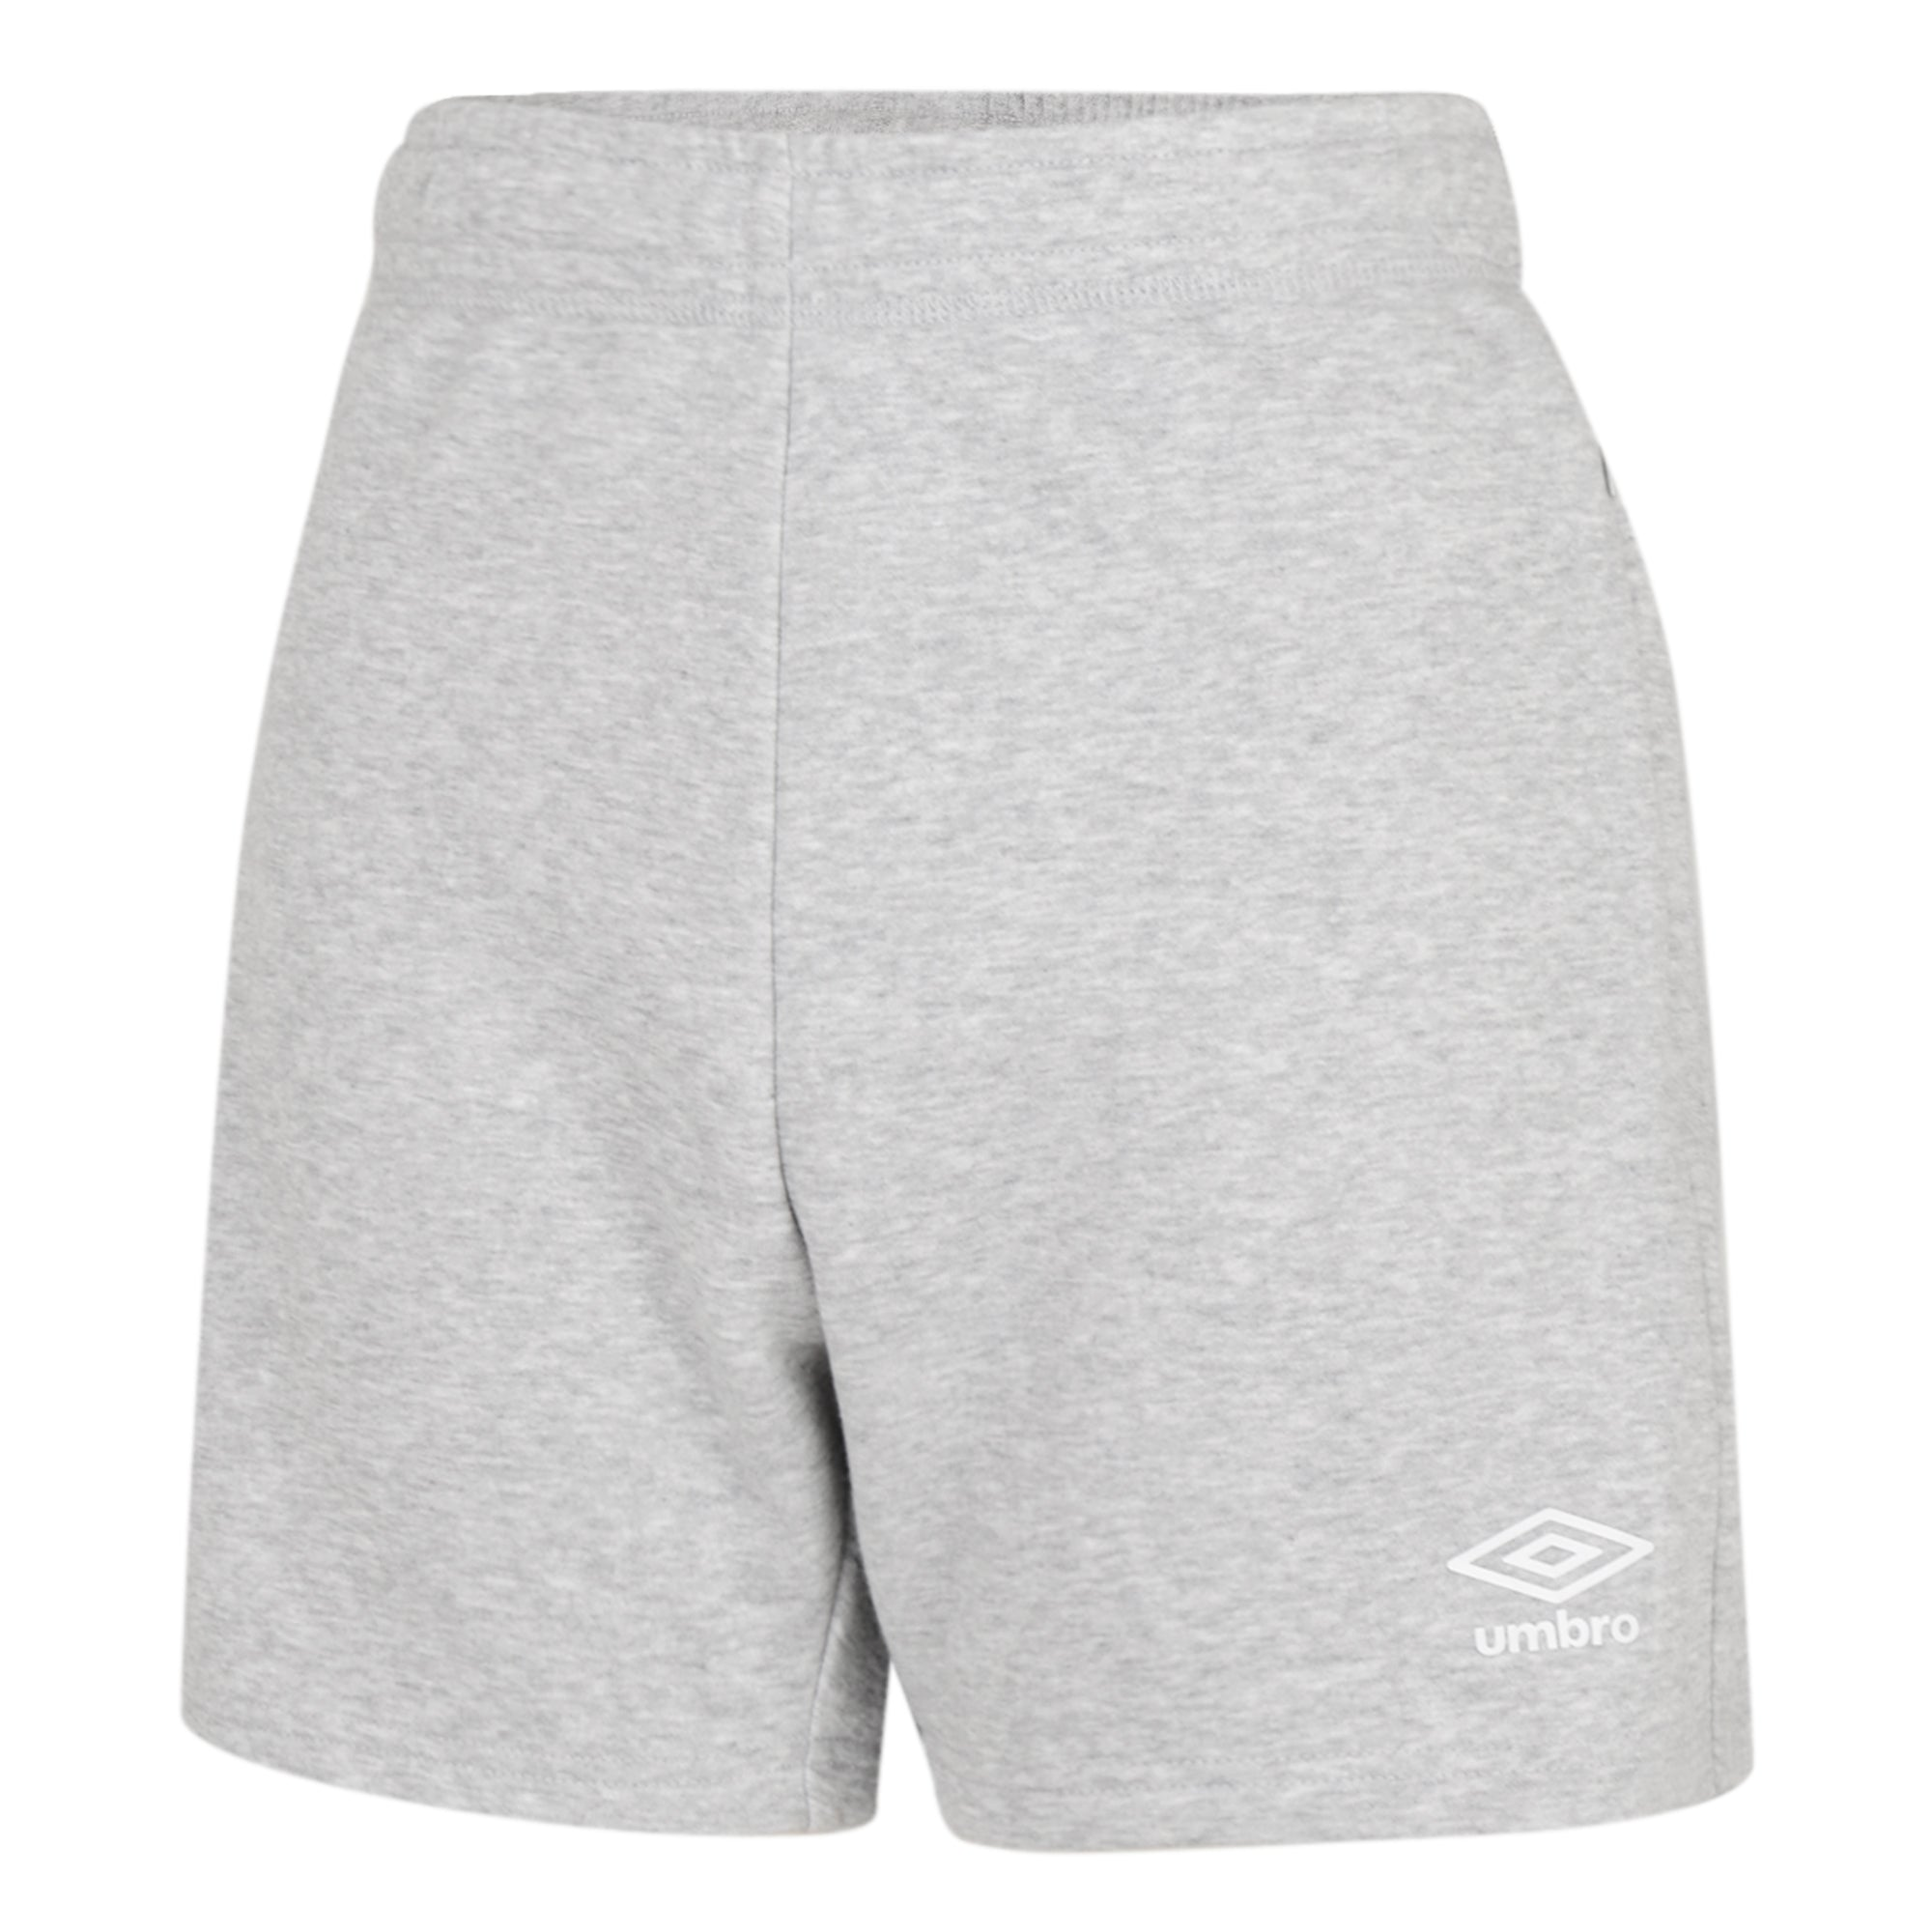 Umbro Club Leisure Women's Jog Shorts - Grey Marl/White